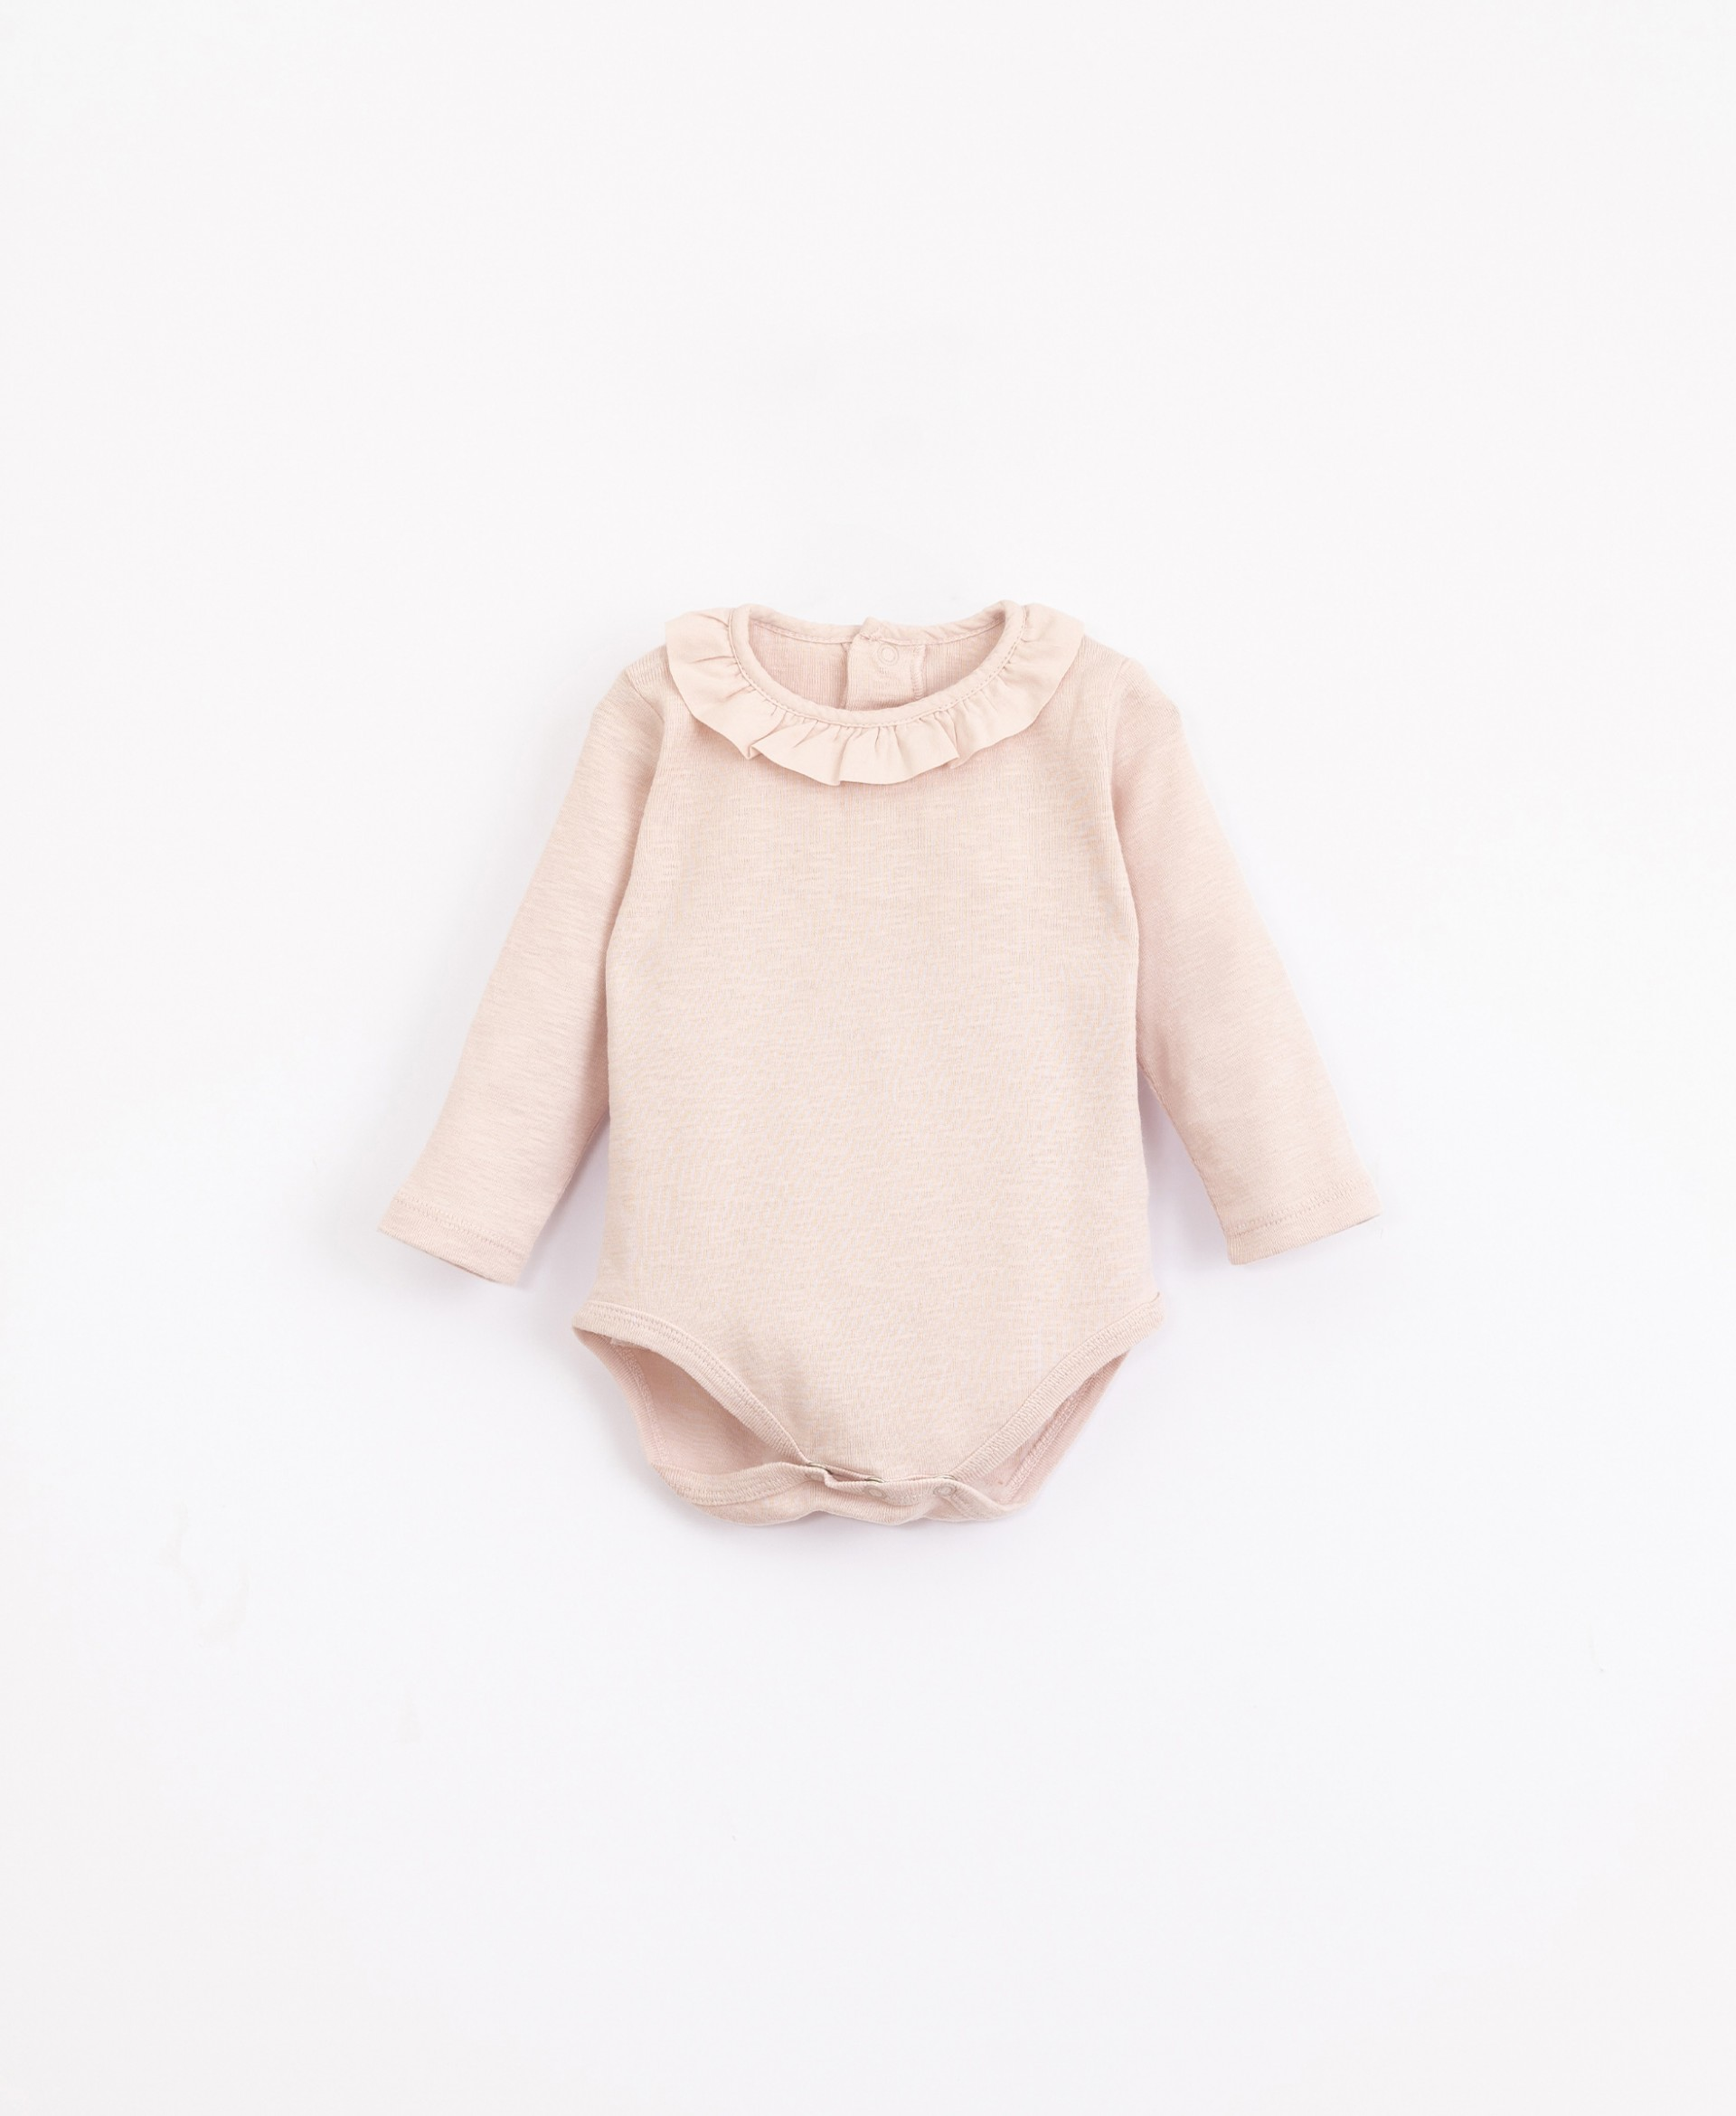 Body in organic cotton with spring-clip opening | Illustration